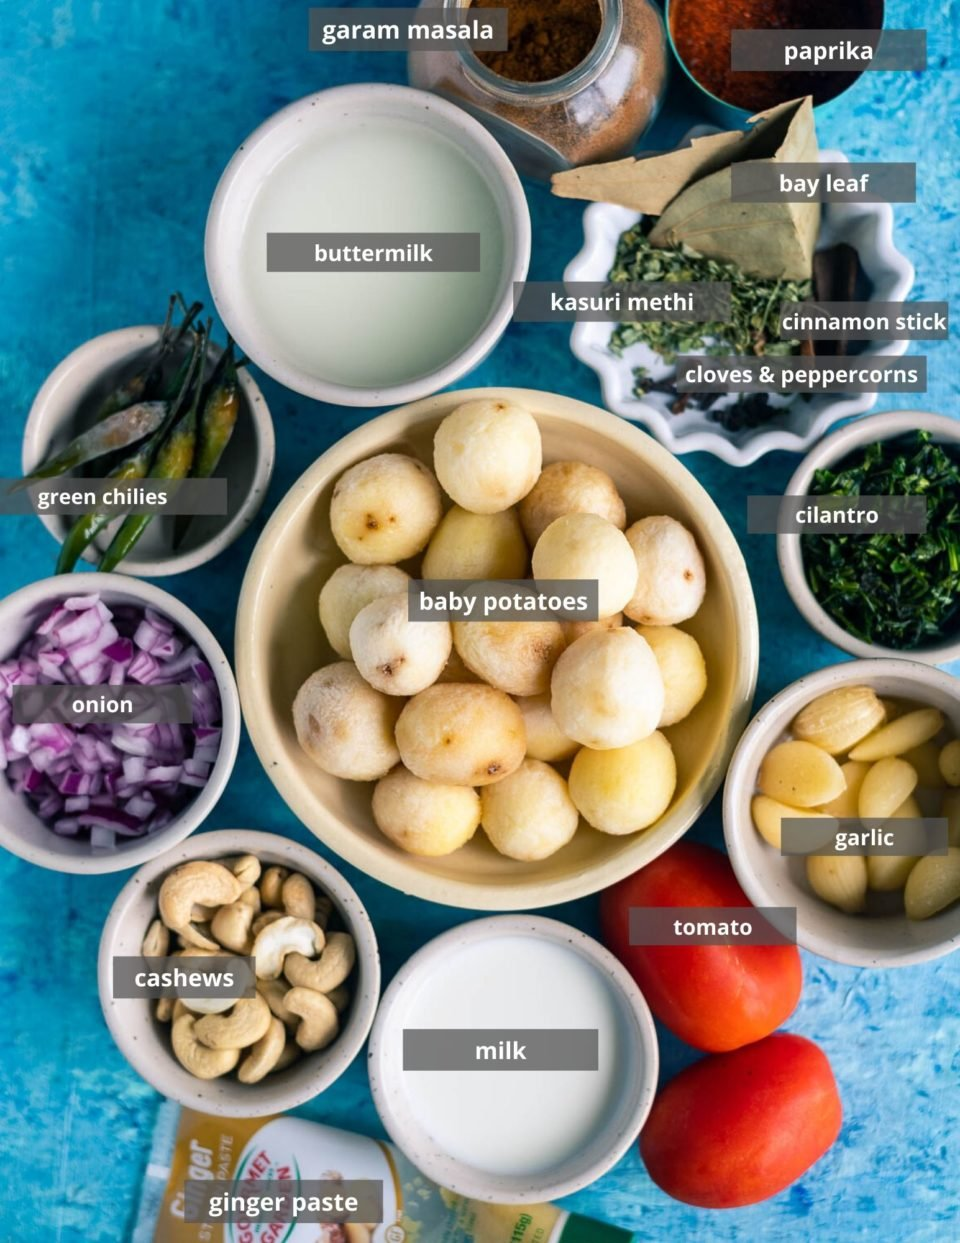 all the ingredients needed to make Dum Aloo placed on a table with labels on them